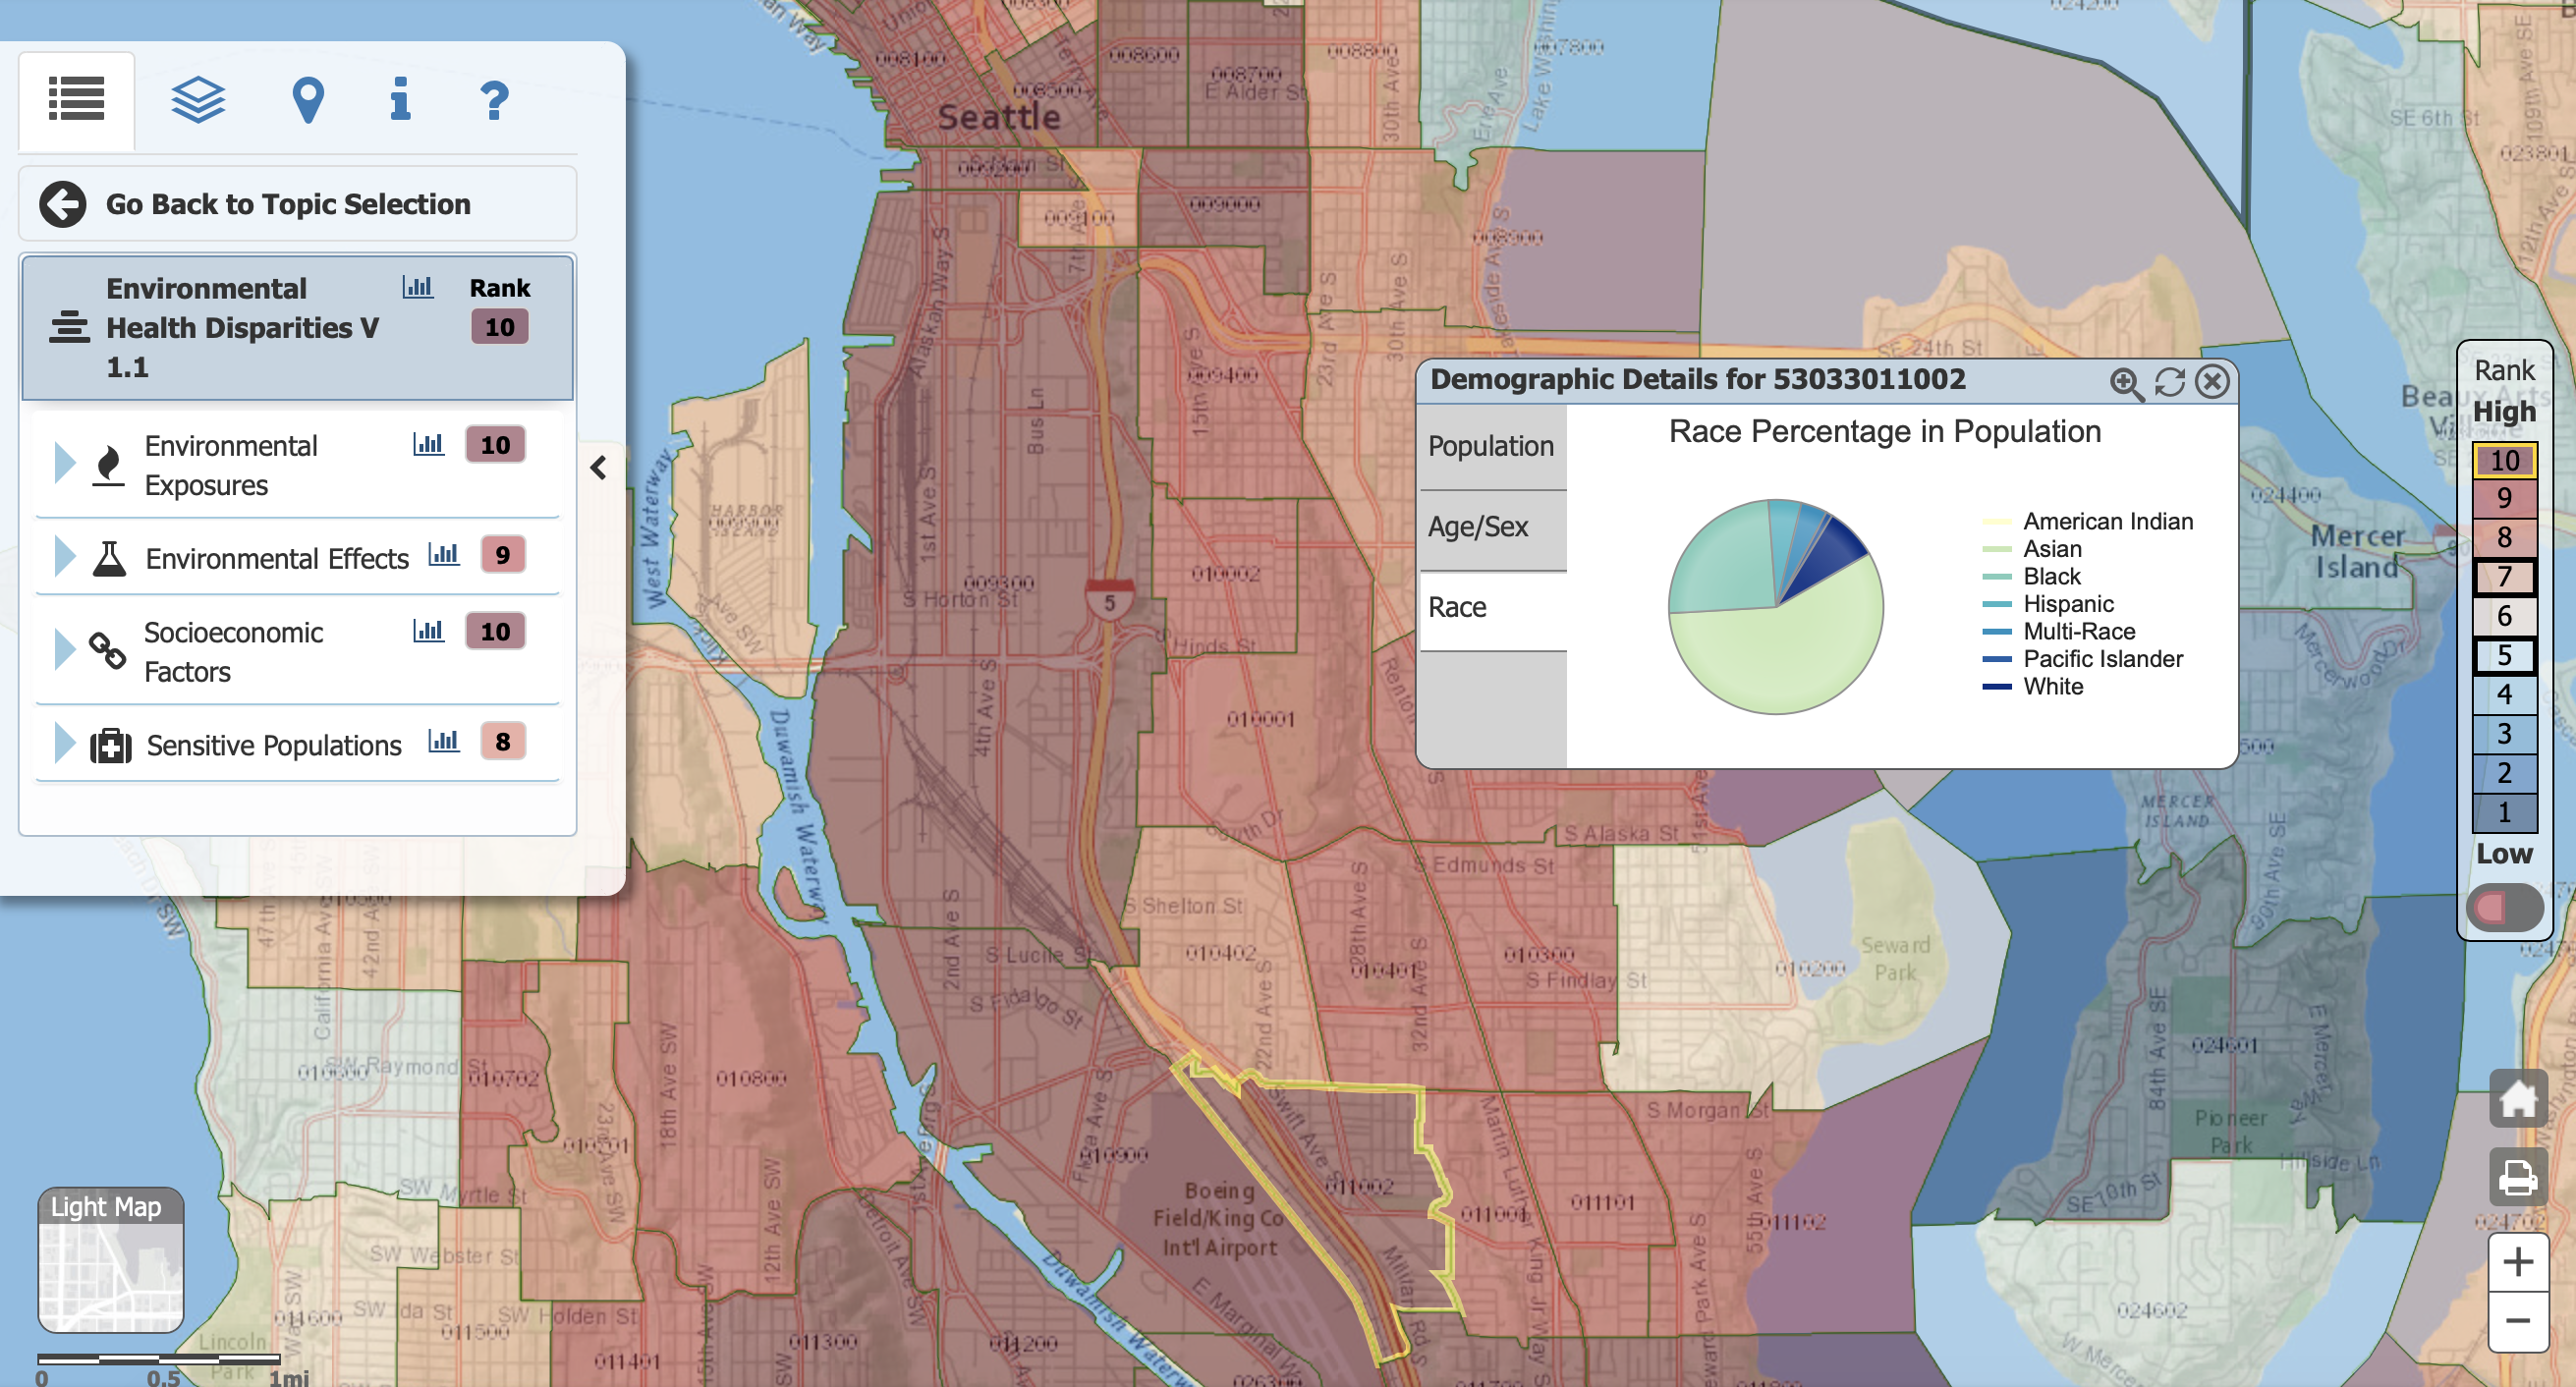 Screenshot from the interactive map.